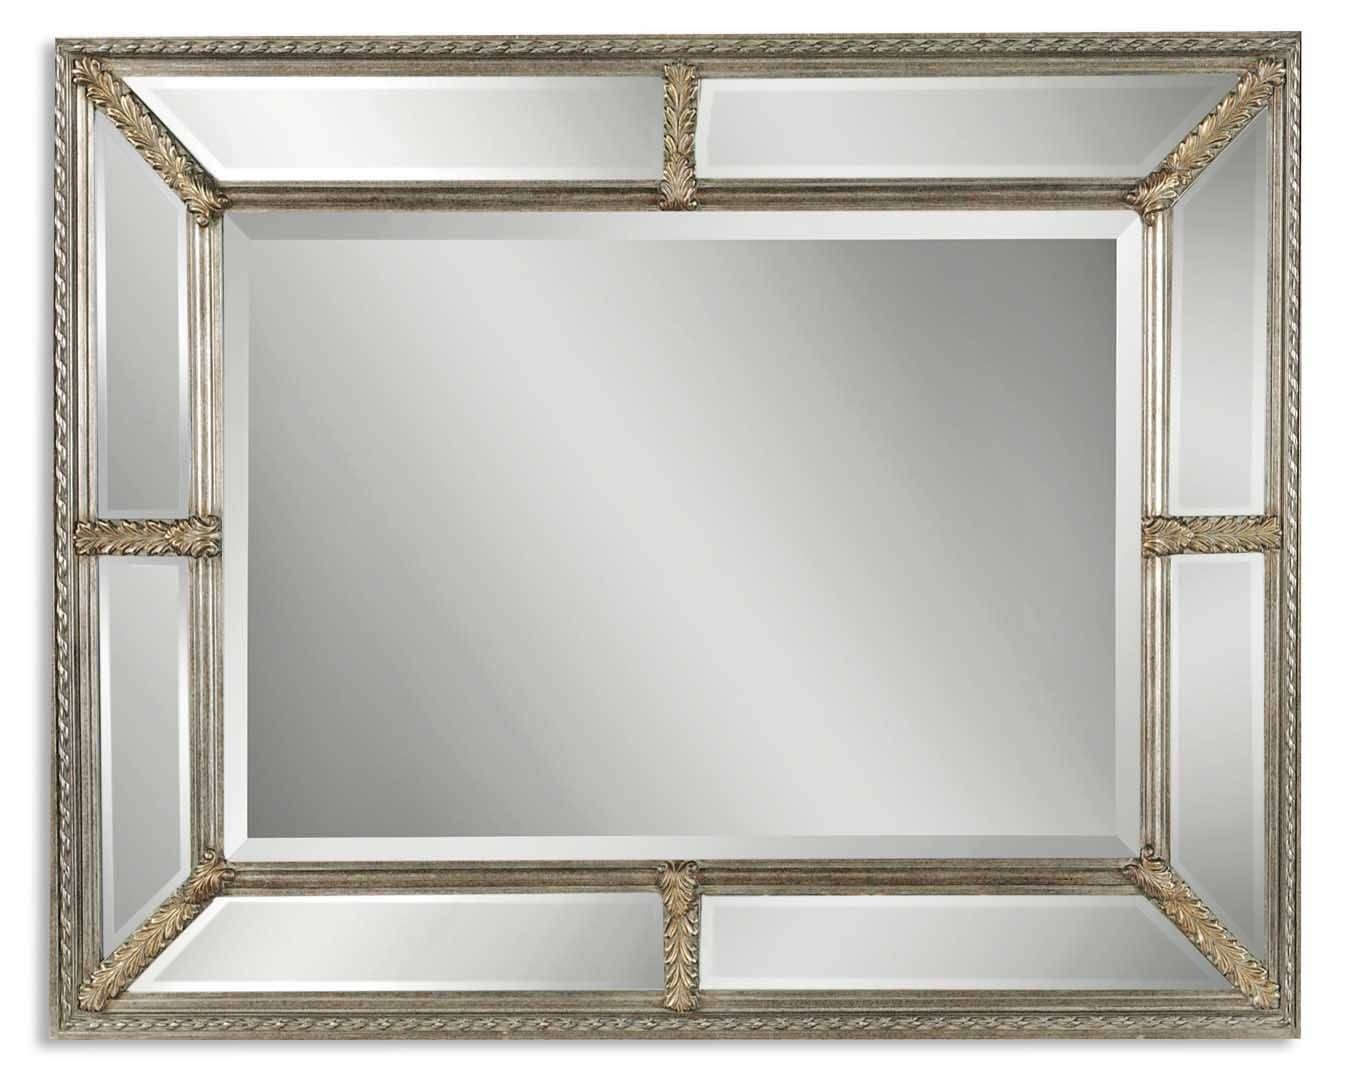 Uttermost Lucinda Antique Silver Mirror 14048 B For Champagne Silver Mirrors (View 12 of 15)